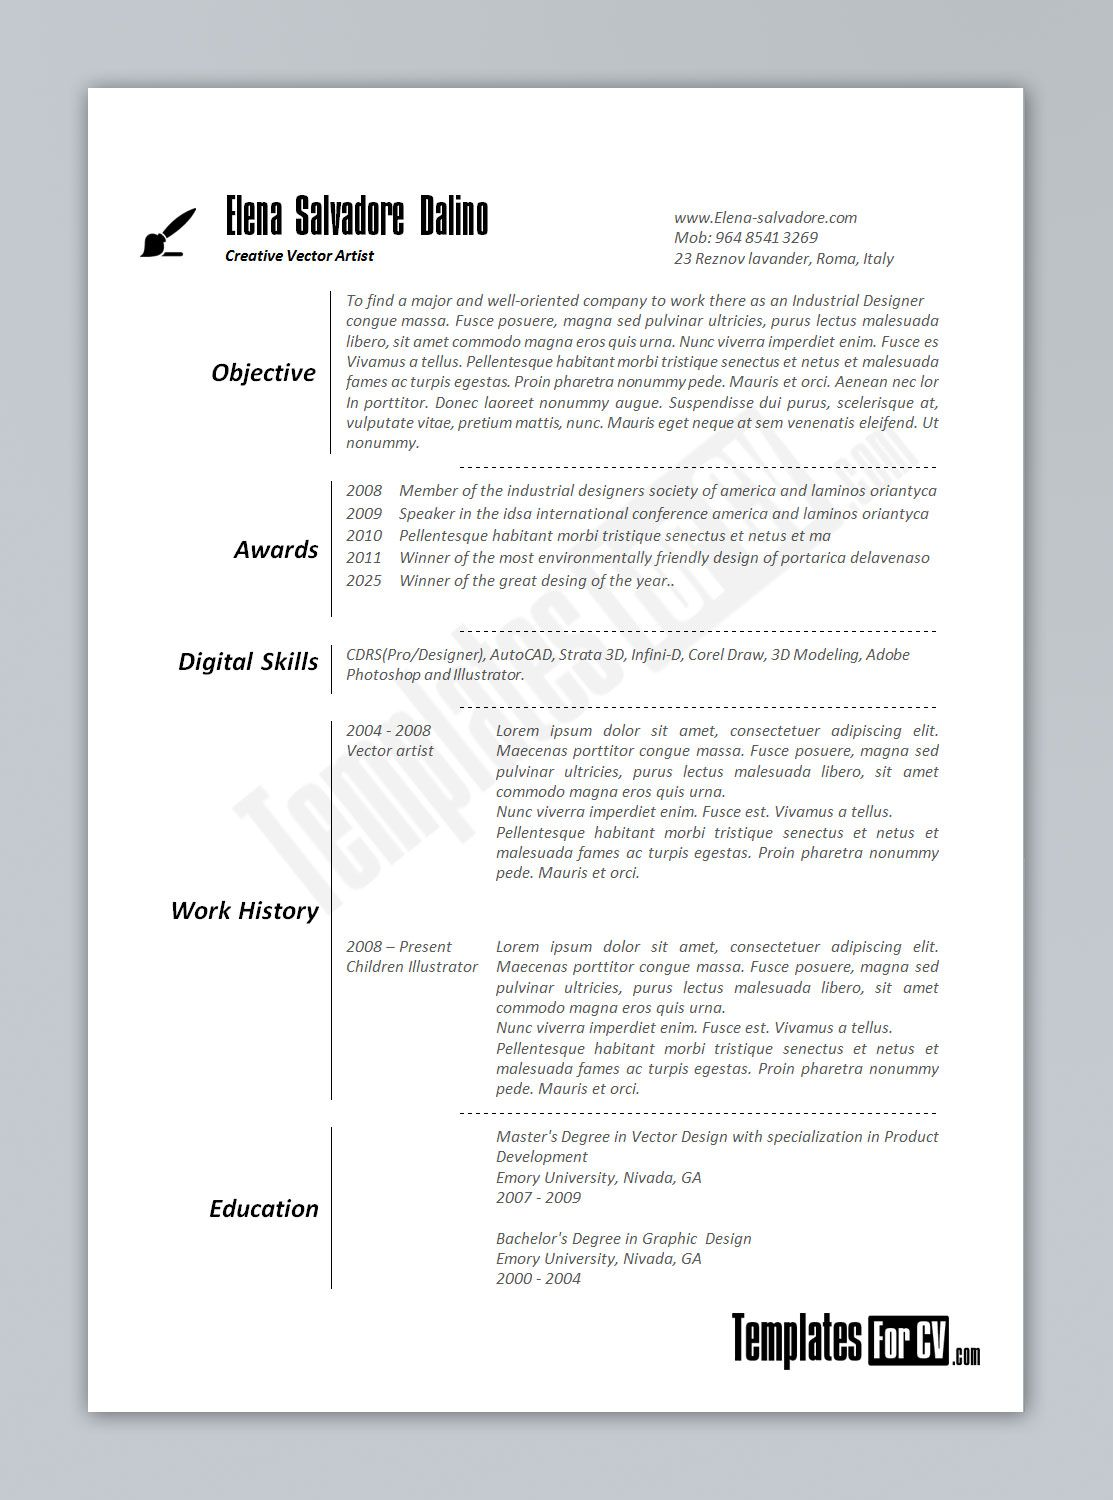 artist cv template artist cv template - Words Resume Template